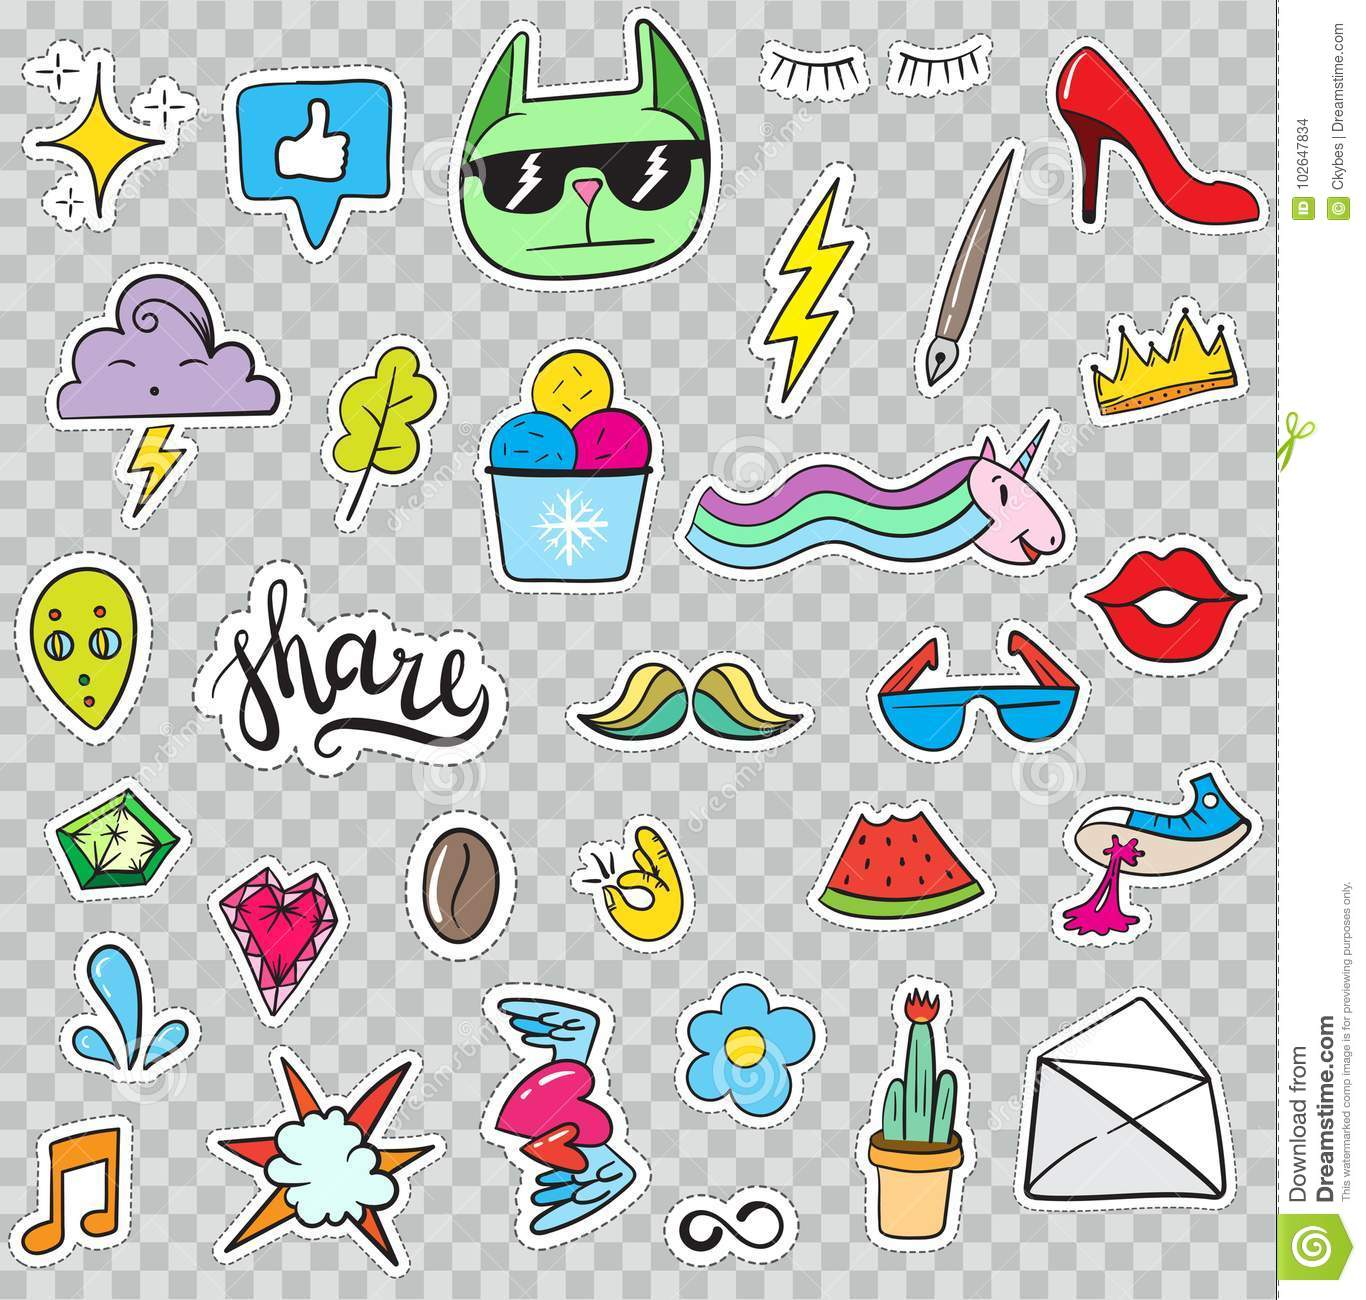 818c8e25833b Hand Drawn Vector. Cute Fashionable Stickers Collection. Doodle Pop art  Sketch Badges and Pins. More similar stock illustrations